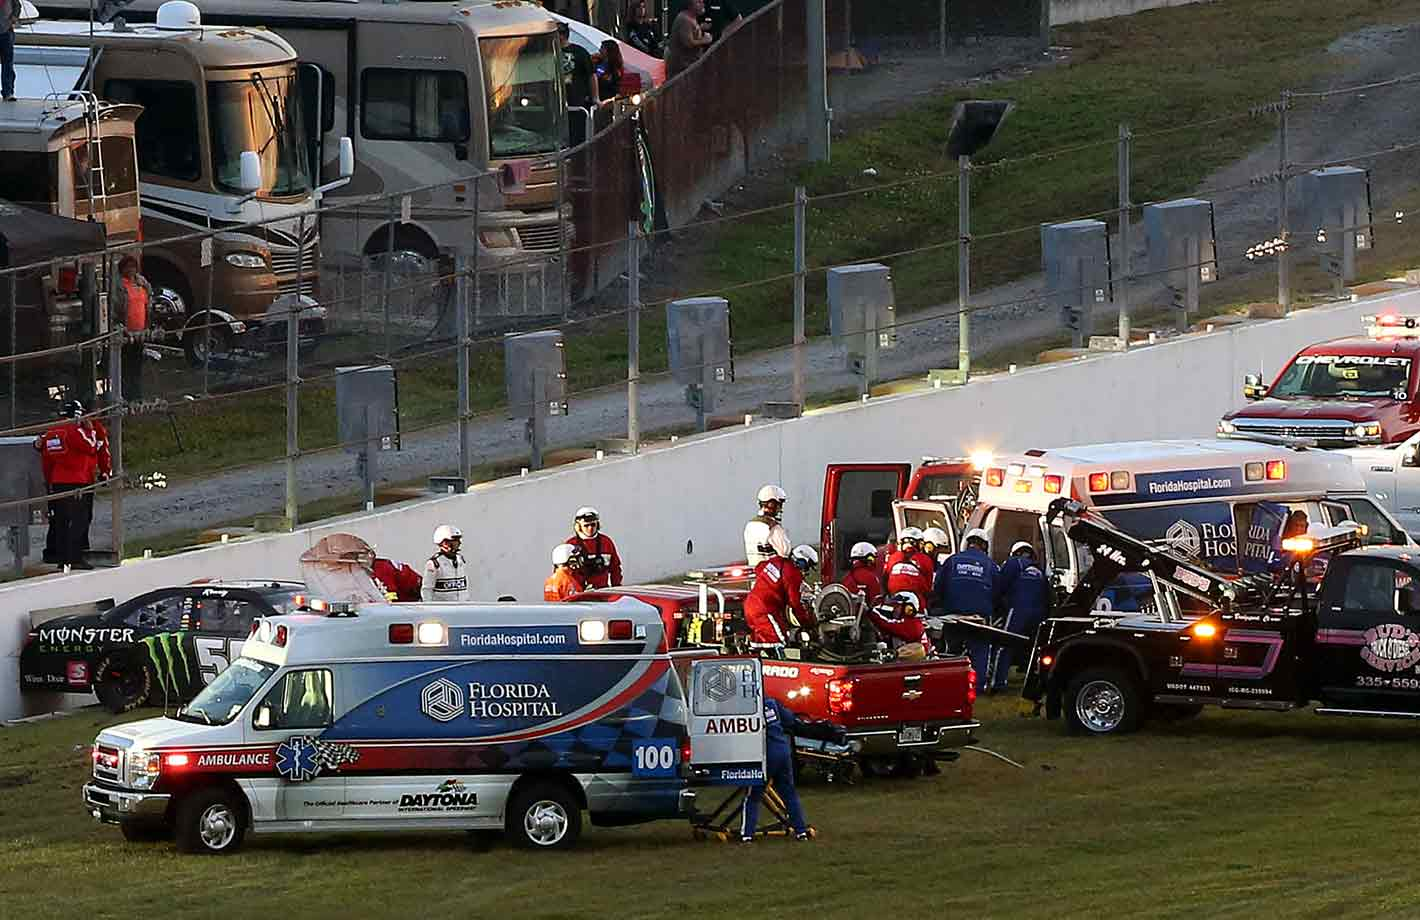 On the eve of making his 2015 Sprint Cup debut at Daytona, the Joe Gibbs Racing pilot veered away from an Xfinity race and crashed hood-first into a concrete interior wall. He sustained a compound fracture in his lower right leg, a small fracture in his left foot and a sprained finger. In recovery, he wondered whether his days as a pro racer were through, but he returned to the Cup series four months later and won four of five races. After being granted a waiver into the Chase, he points-raced his way to Homestead and prevailed in that winner-take-all contest on a final restart on the way to his first series championship.